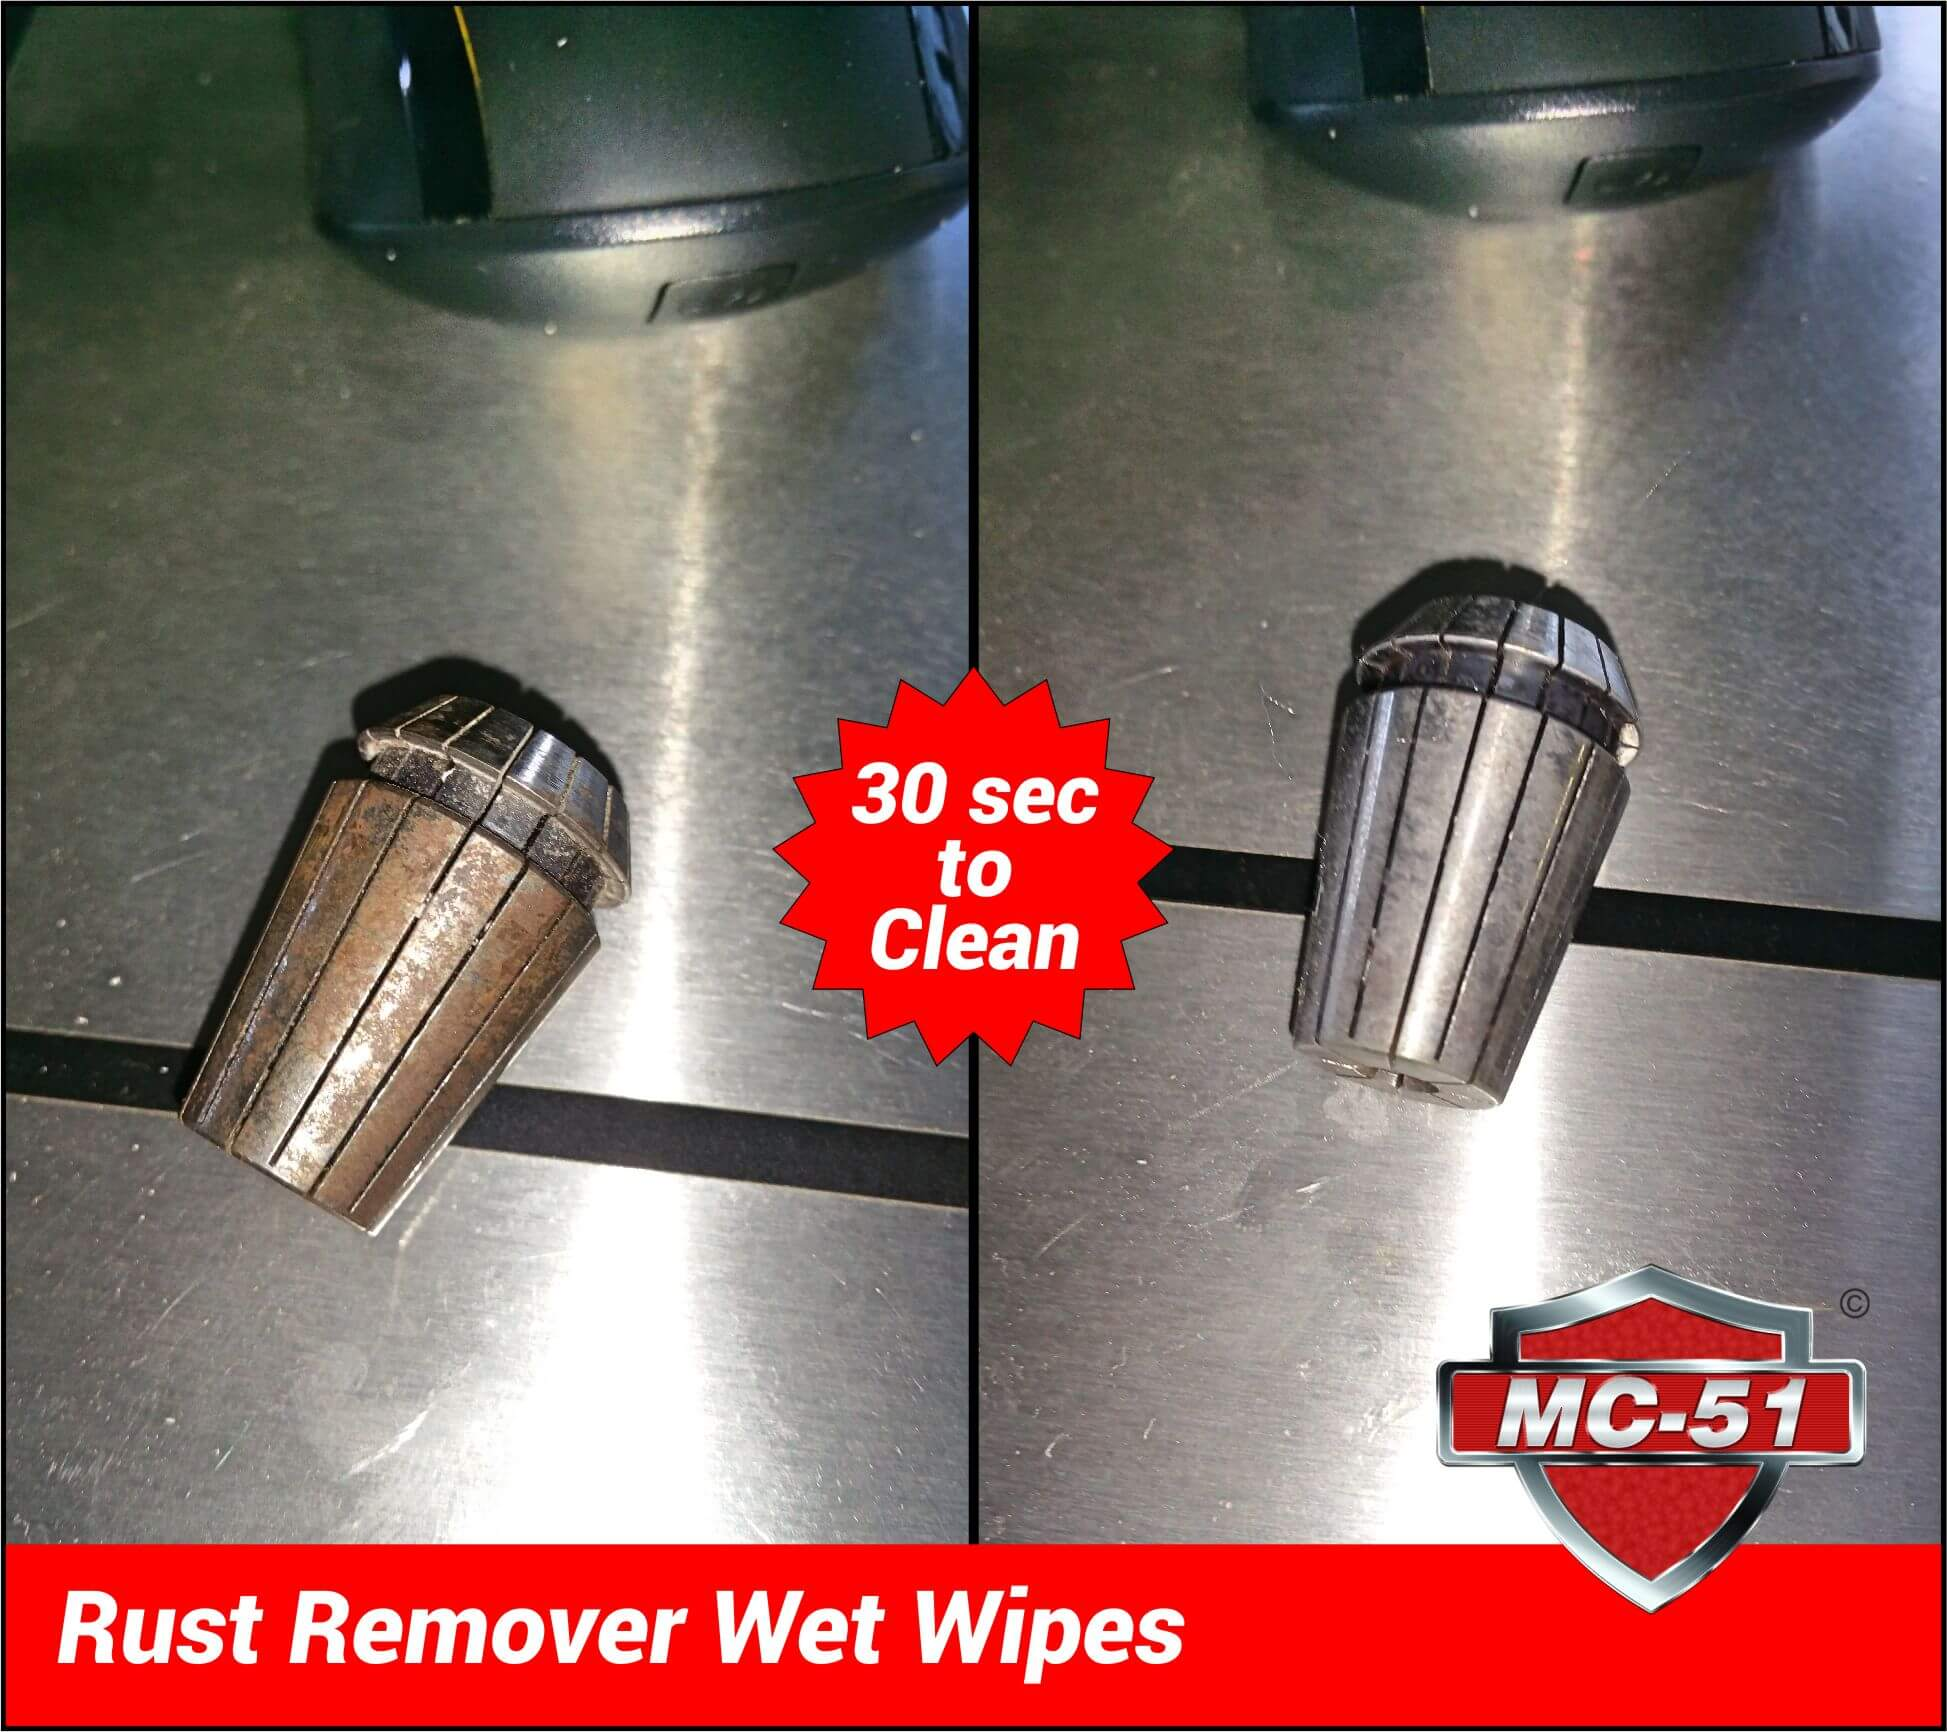 MC-51 Rust Remover Wet Wipes - The best rust remover